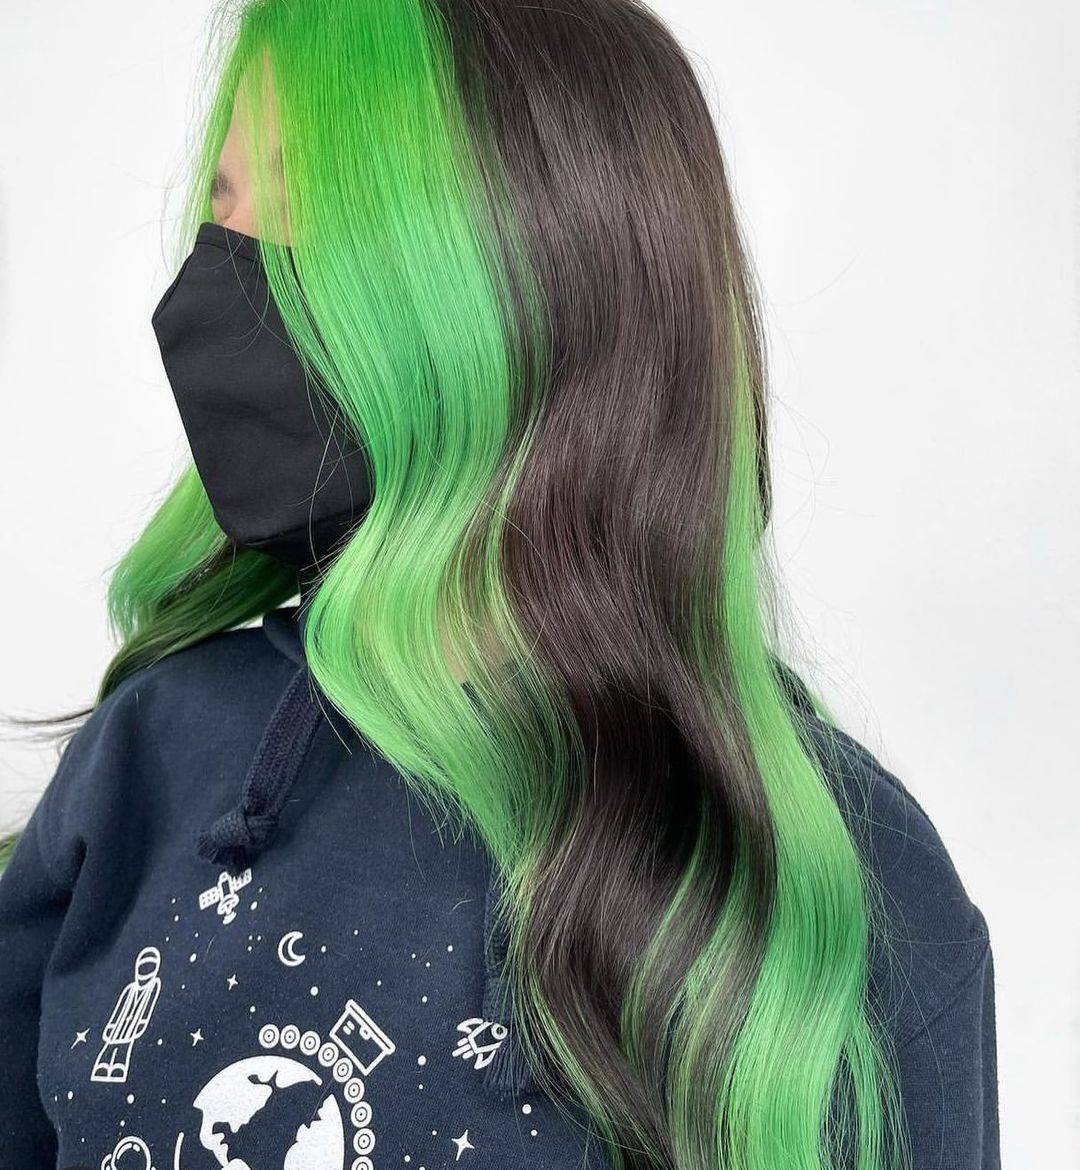 50 Awesome Long Layered Hair Ideas For 2021 images 39